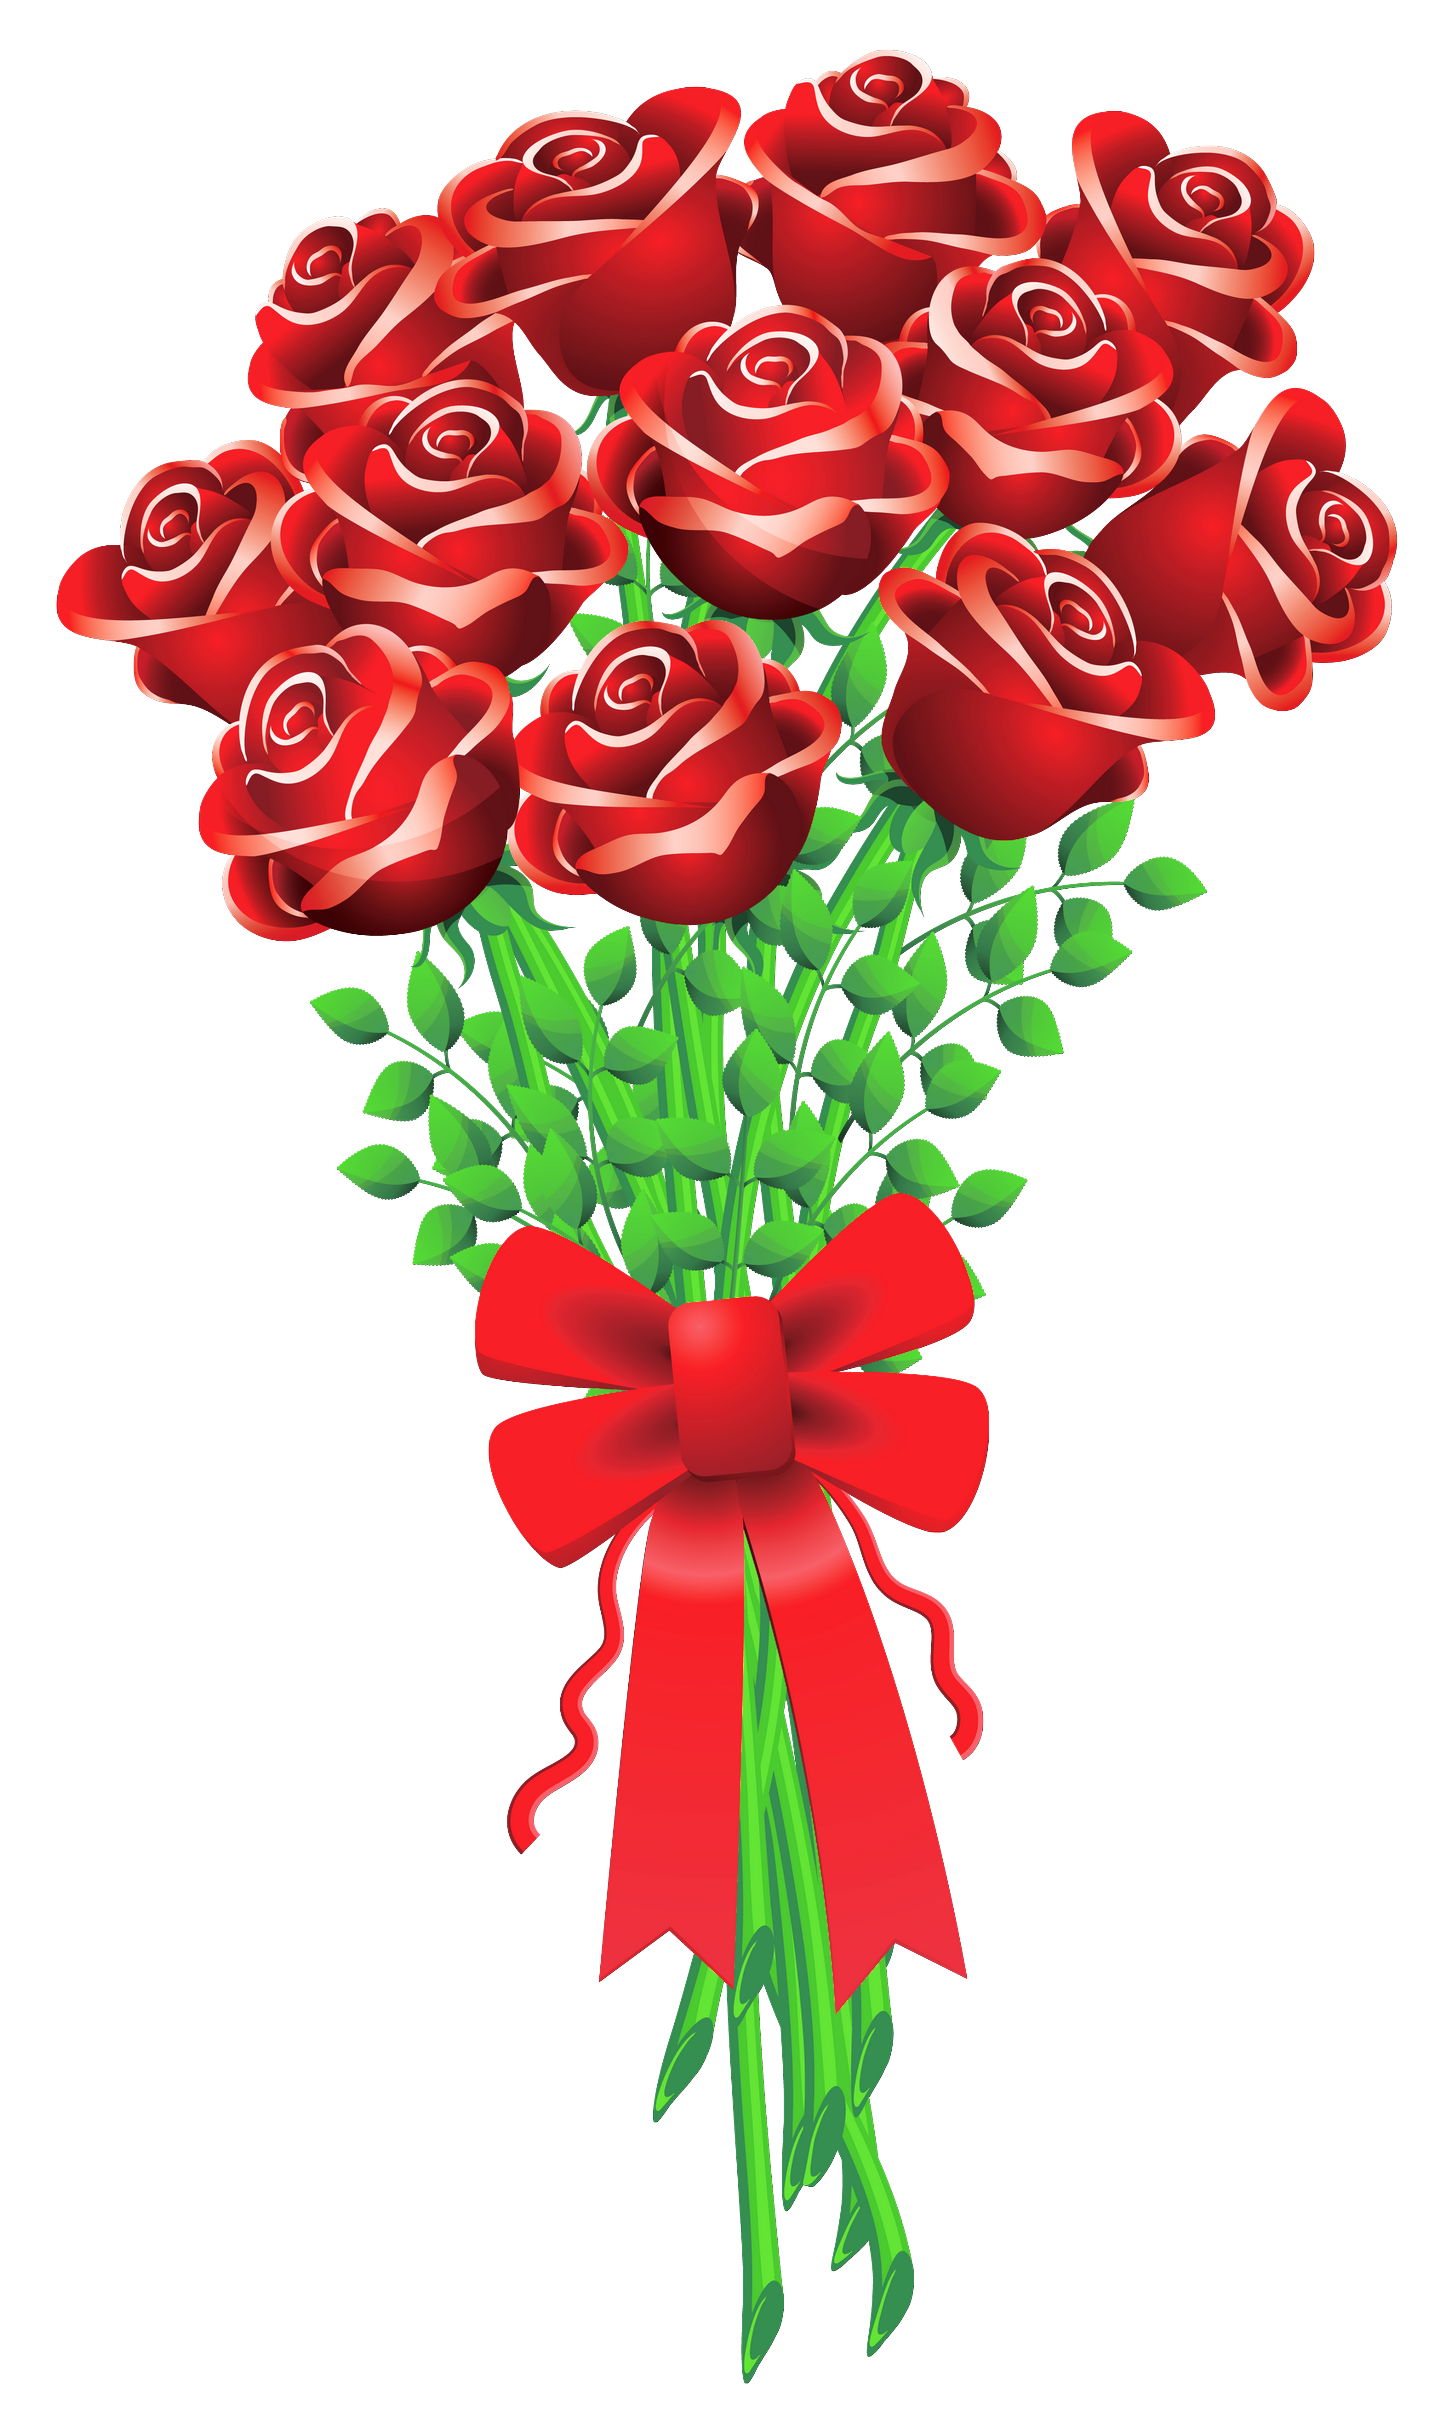 Roses clipart bunch. Of